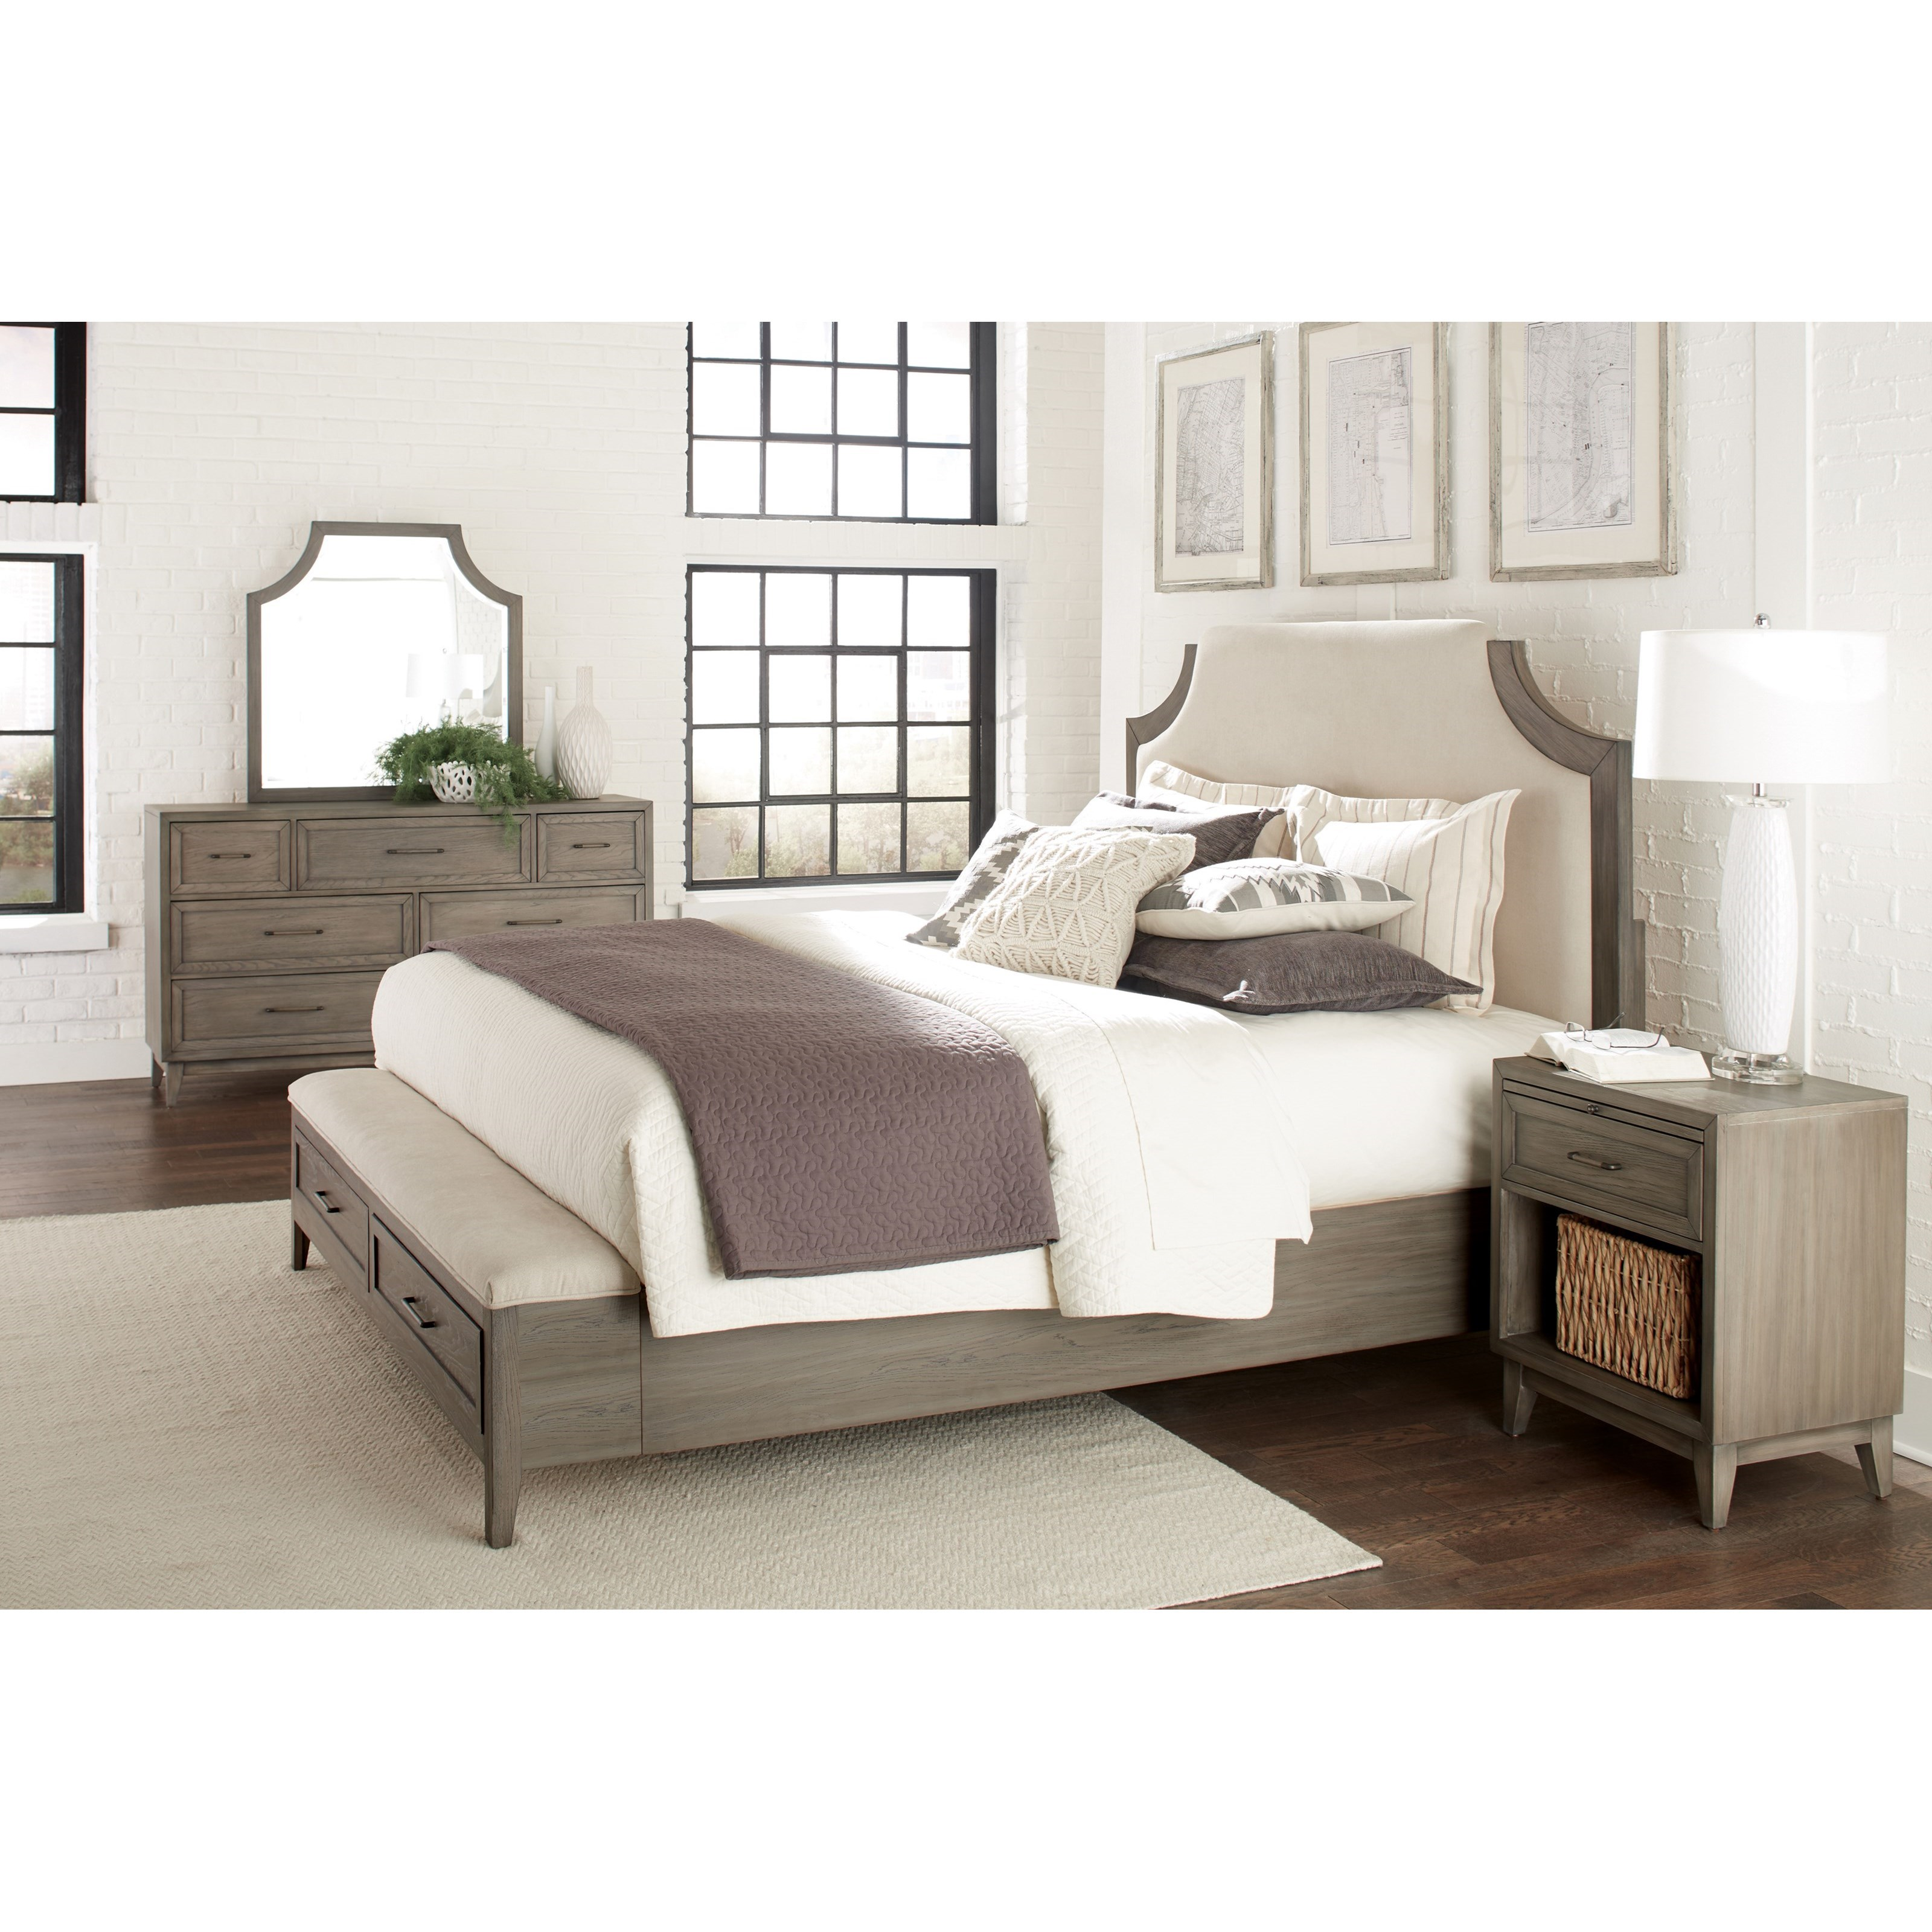 Queen Upholstered Bed With Storage Bench Footboard By